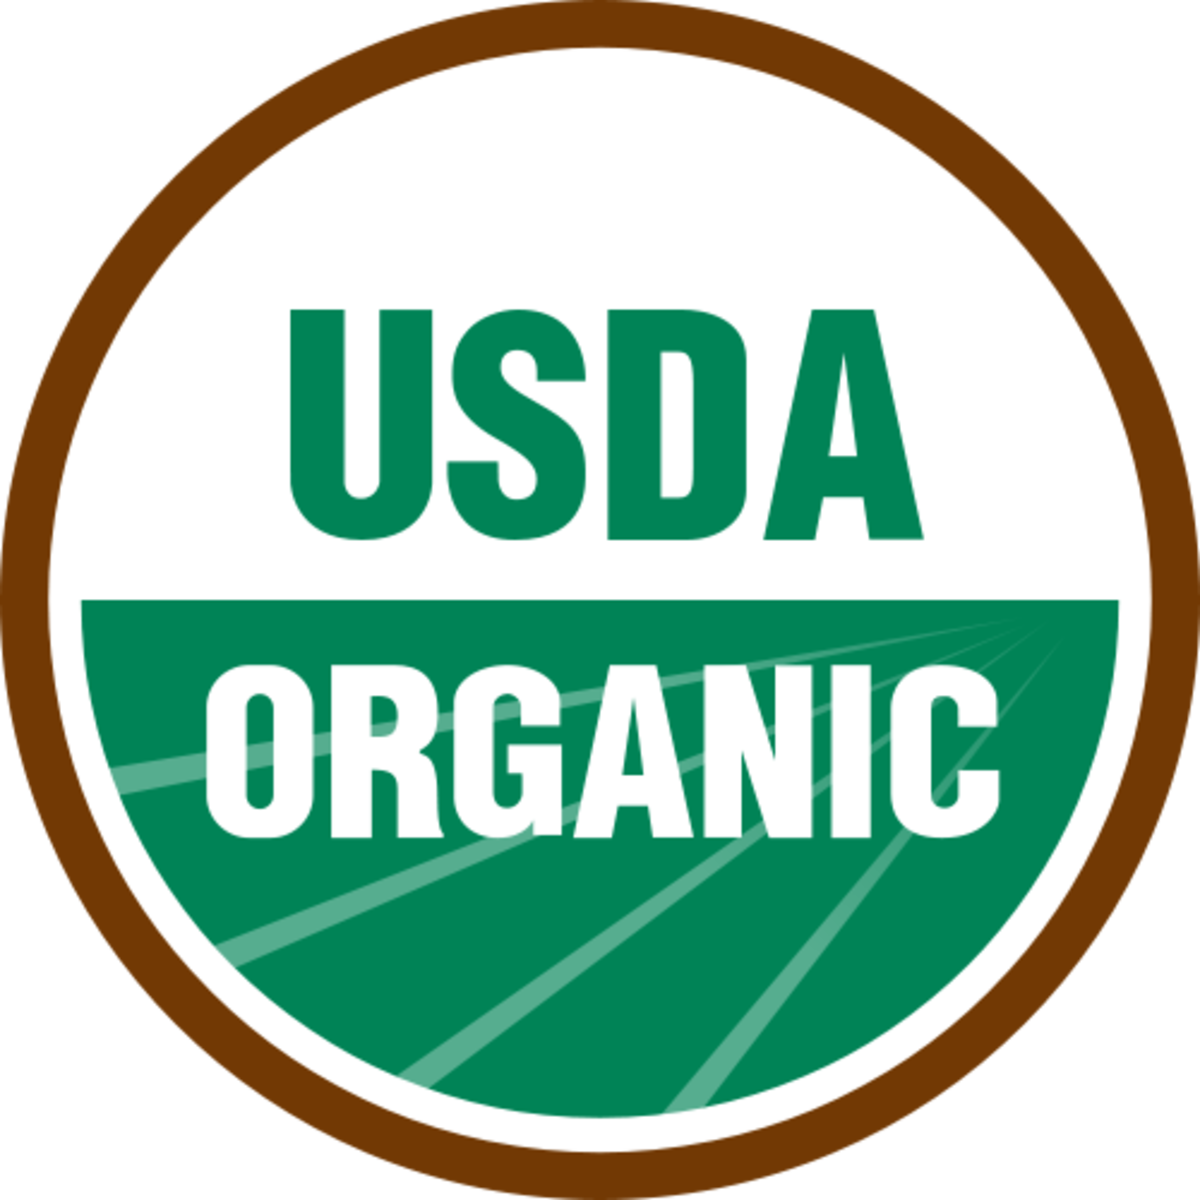 Buy organic products to avoid GMOs.